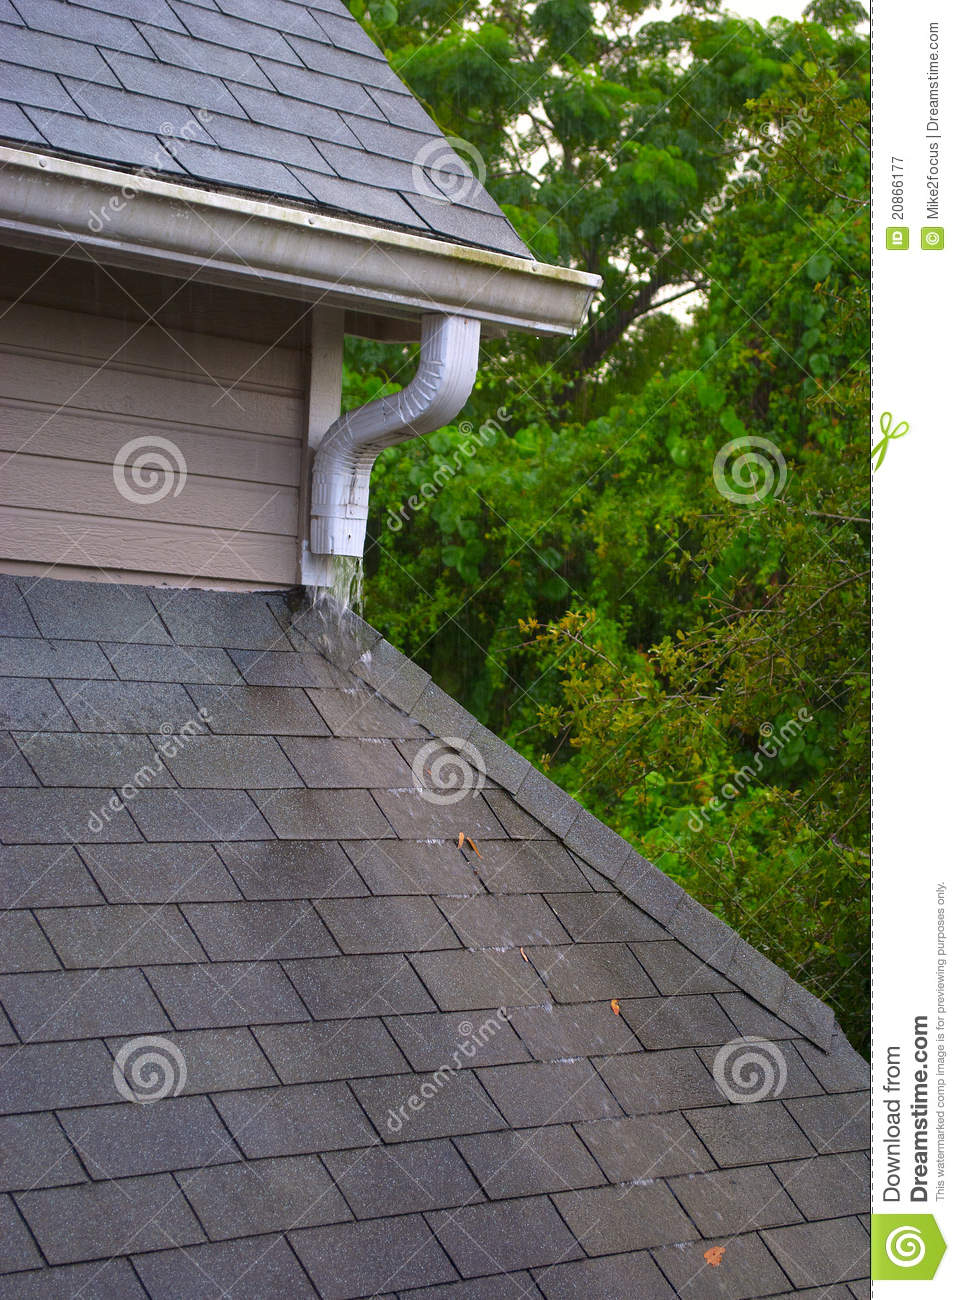 Roof Gutter And Shingles On A Rainy Day Stock Image